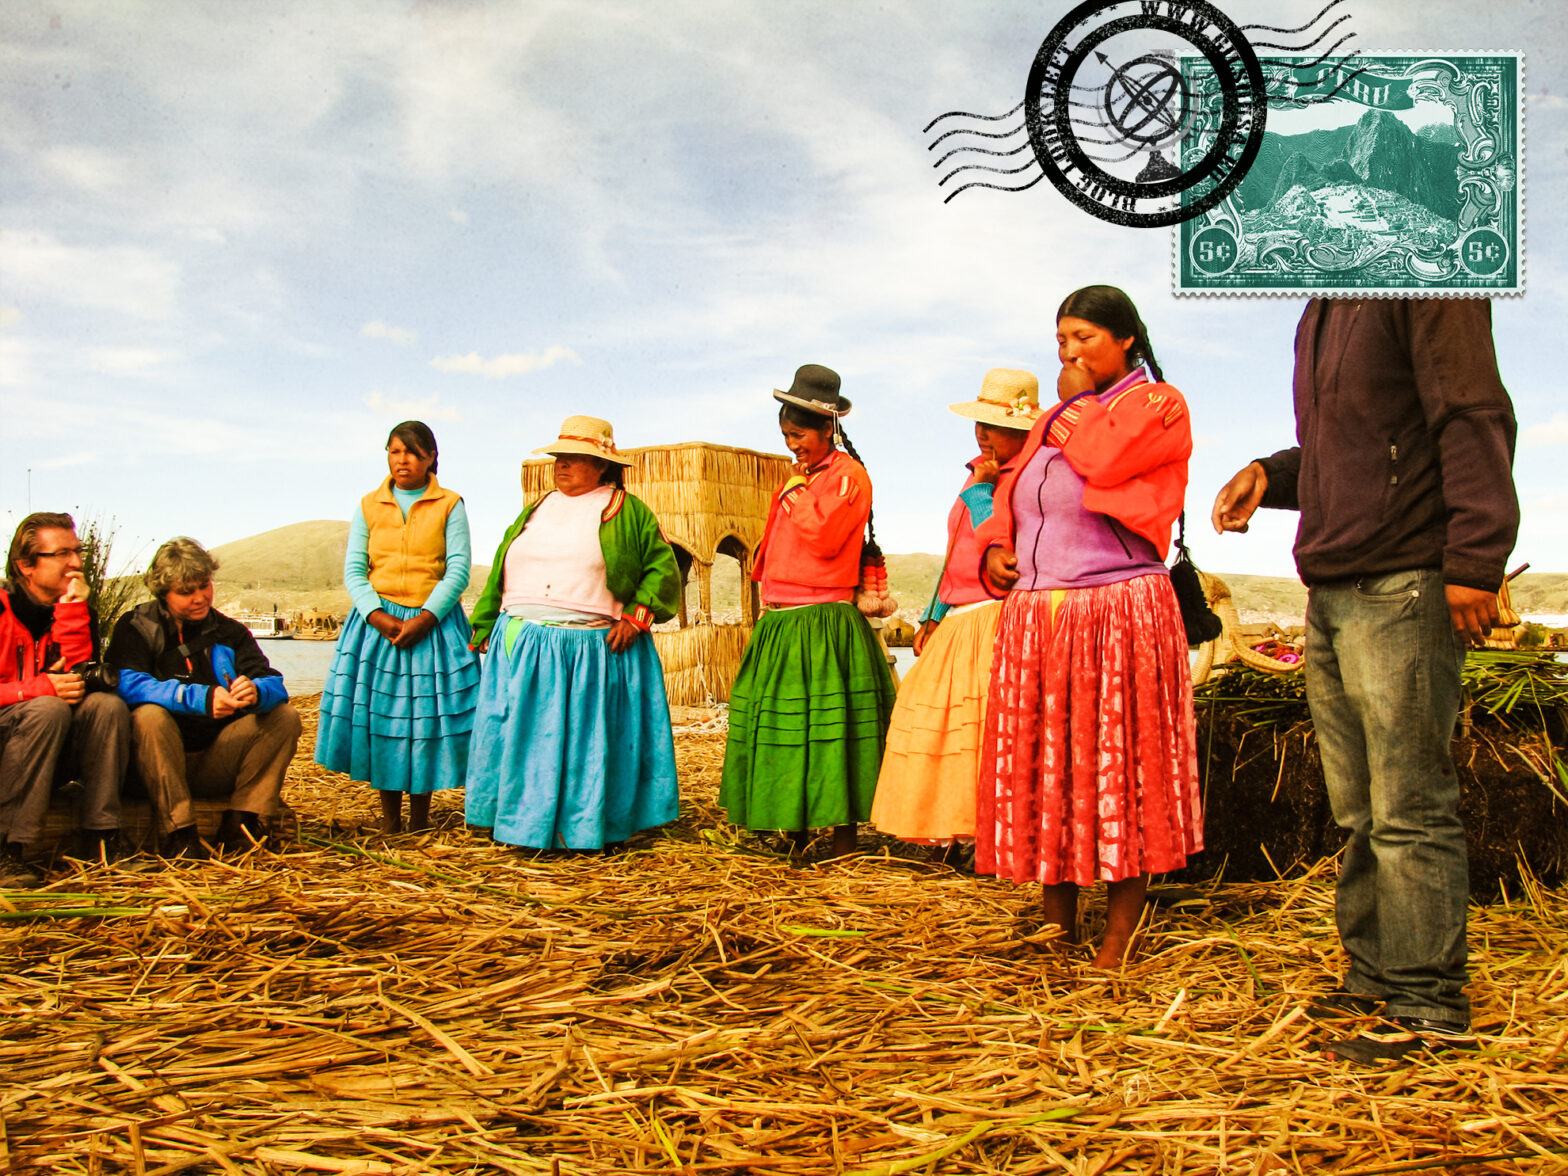 Visit to the Uros Islands, Taquile Island and Lake Titicaca